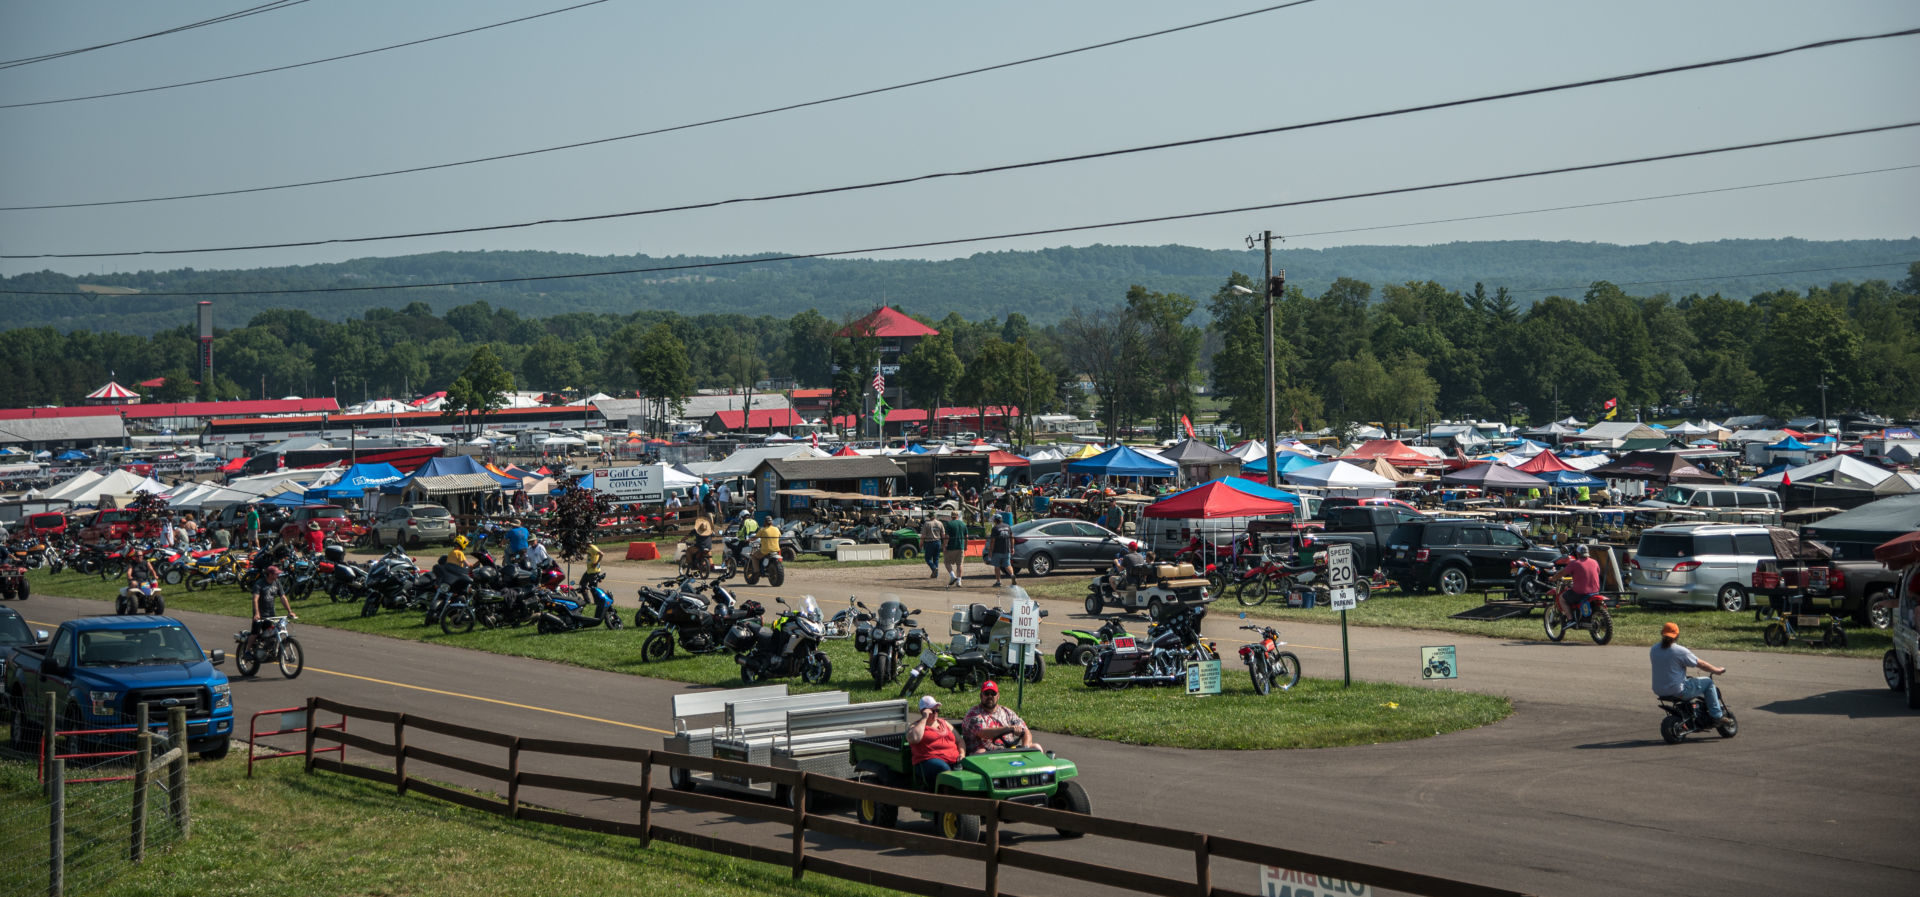 Mid-Ohio Sports Car Course, as seen during AMA Vintage Motorcycle Days 2019. Photo by Jen Muecke, courtesy AMA.